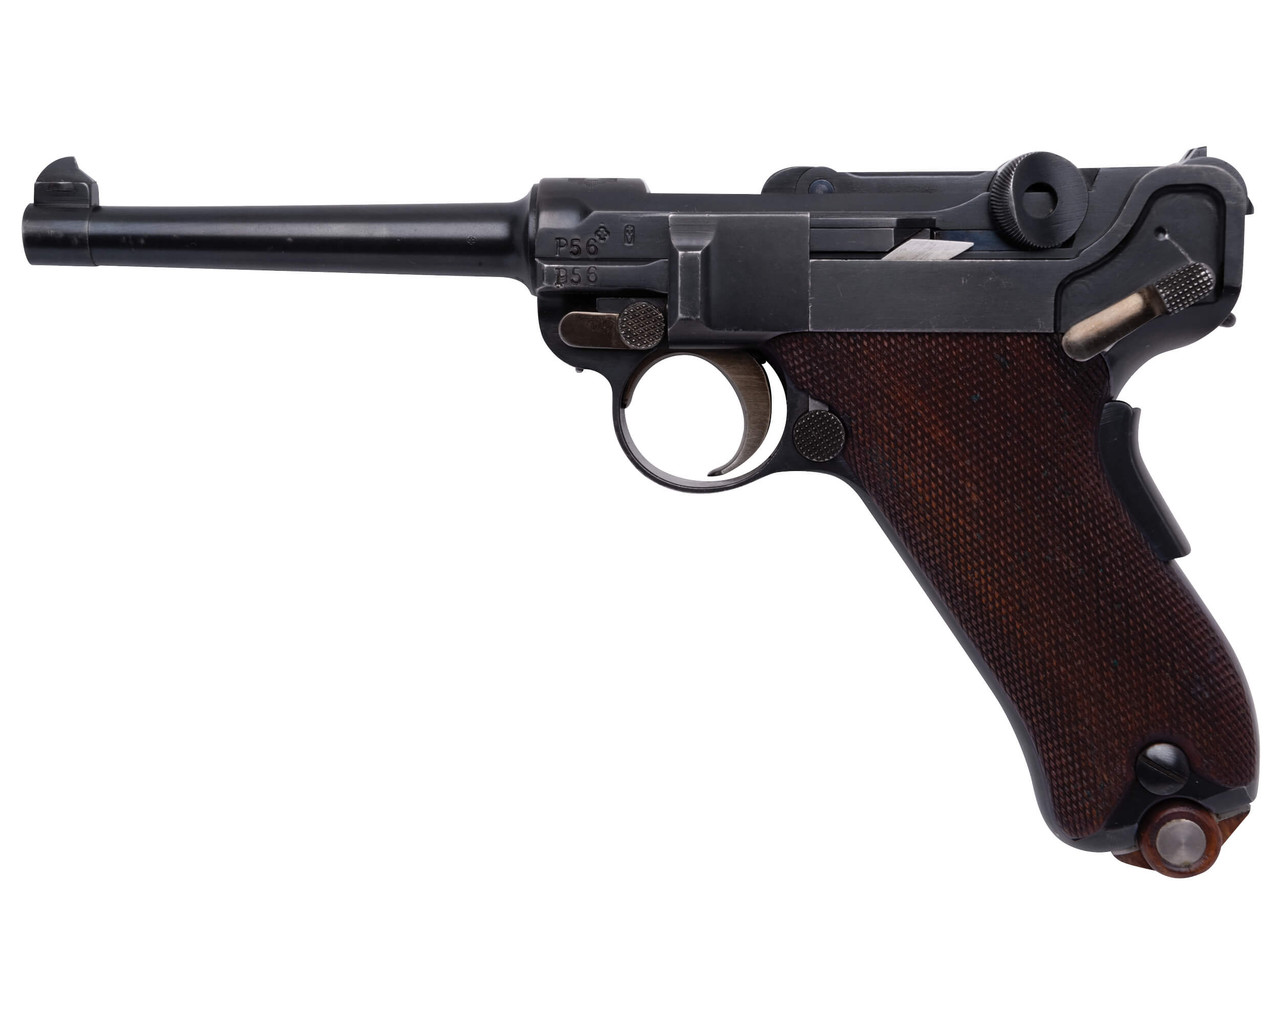 DWM Luger 1900 Swiss Military - sn 17xx